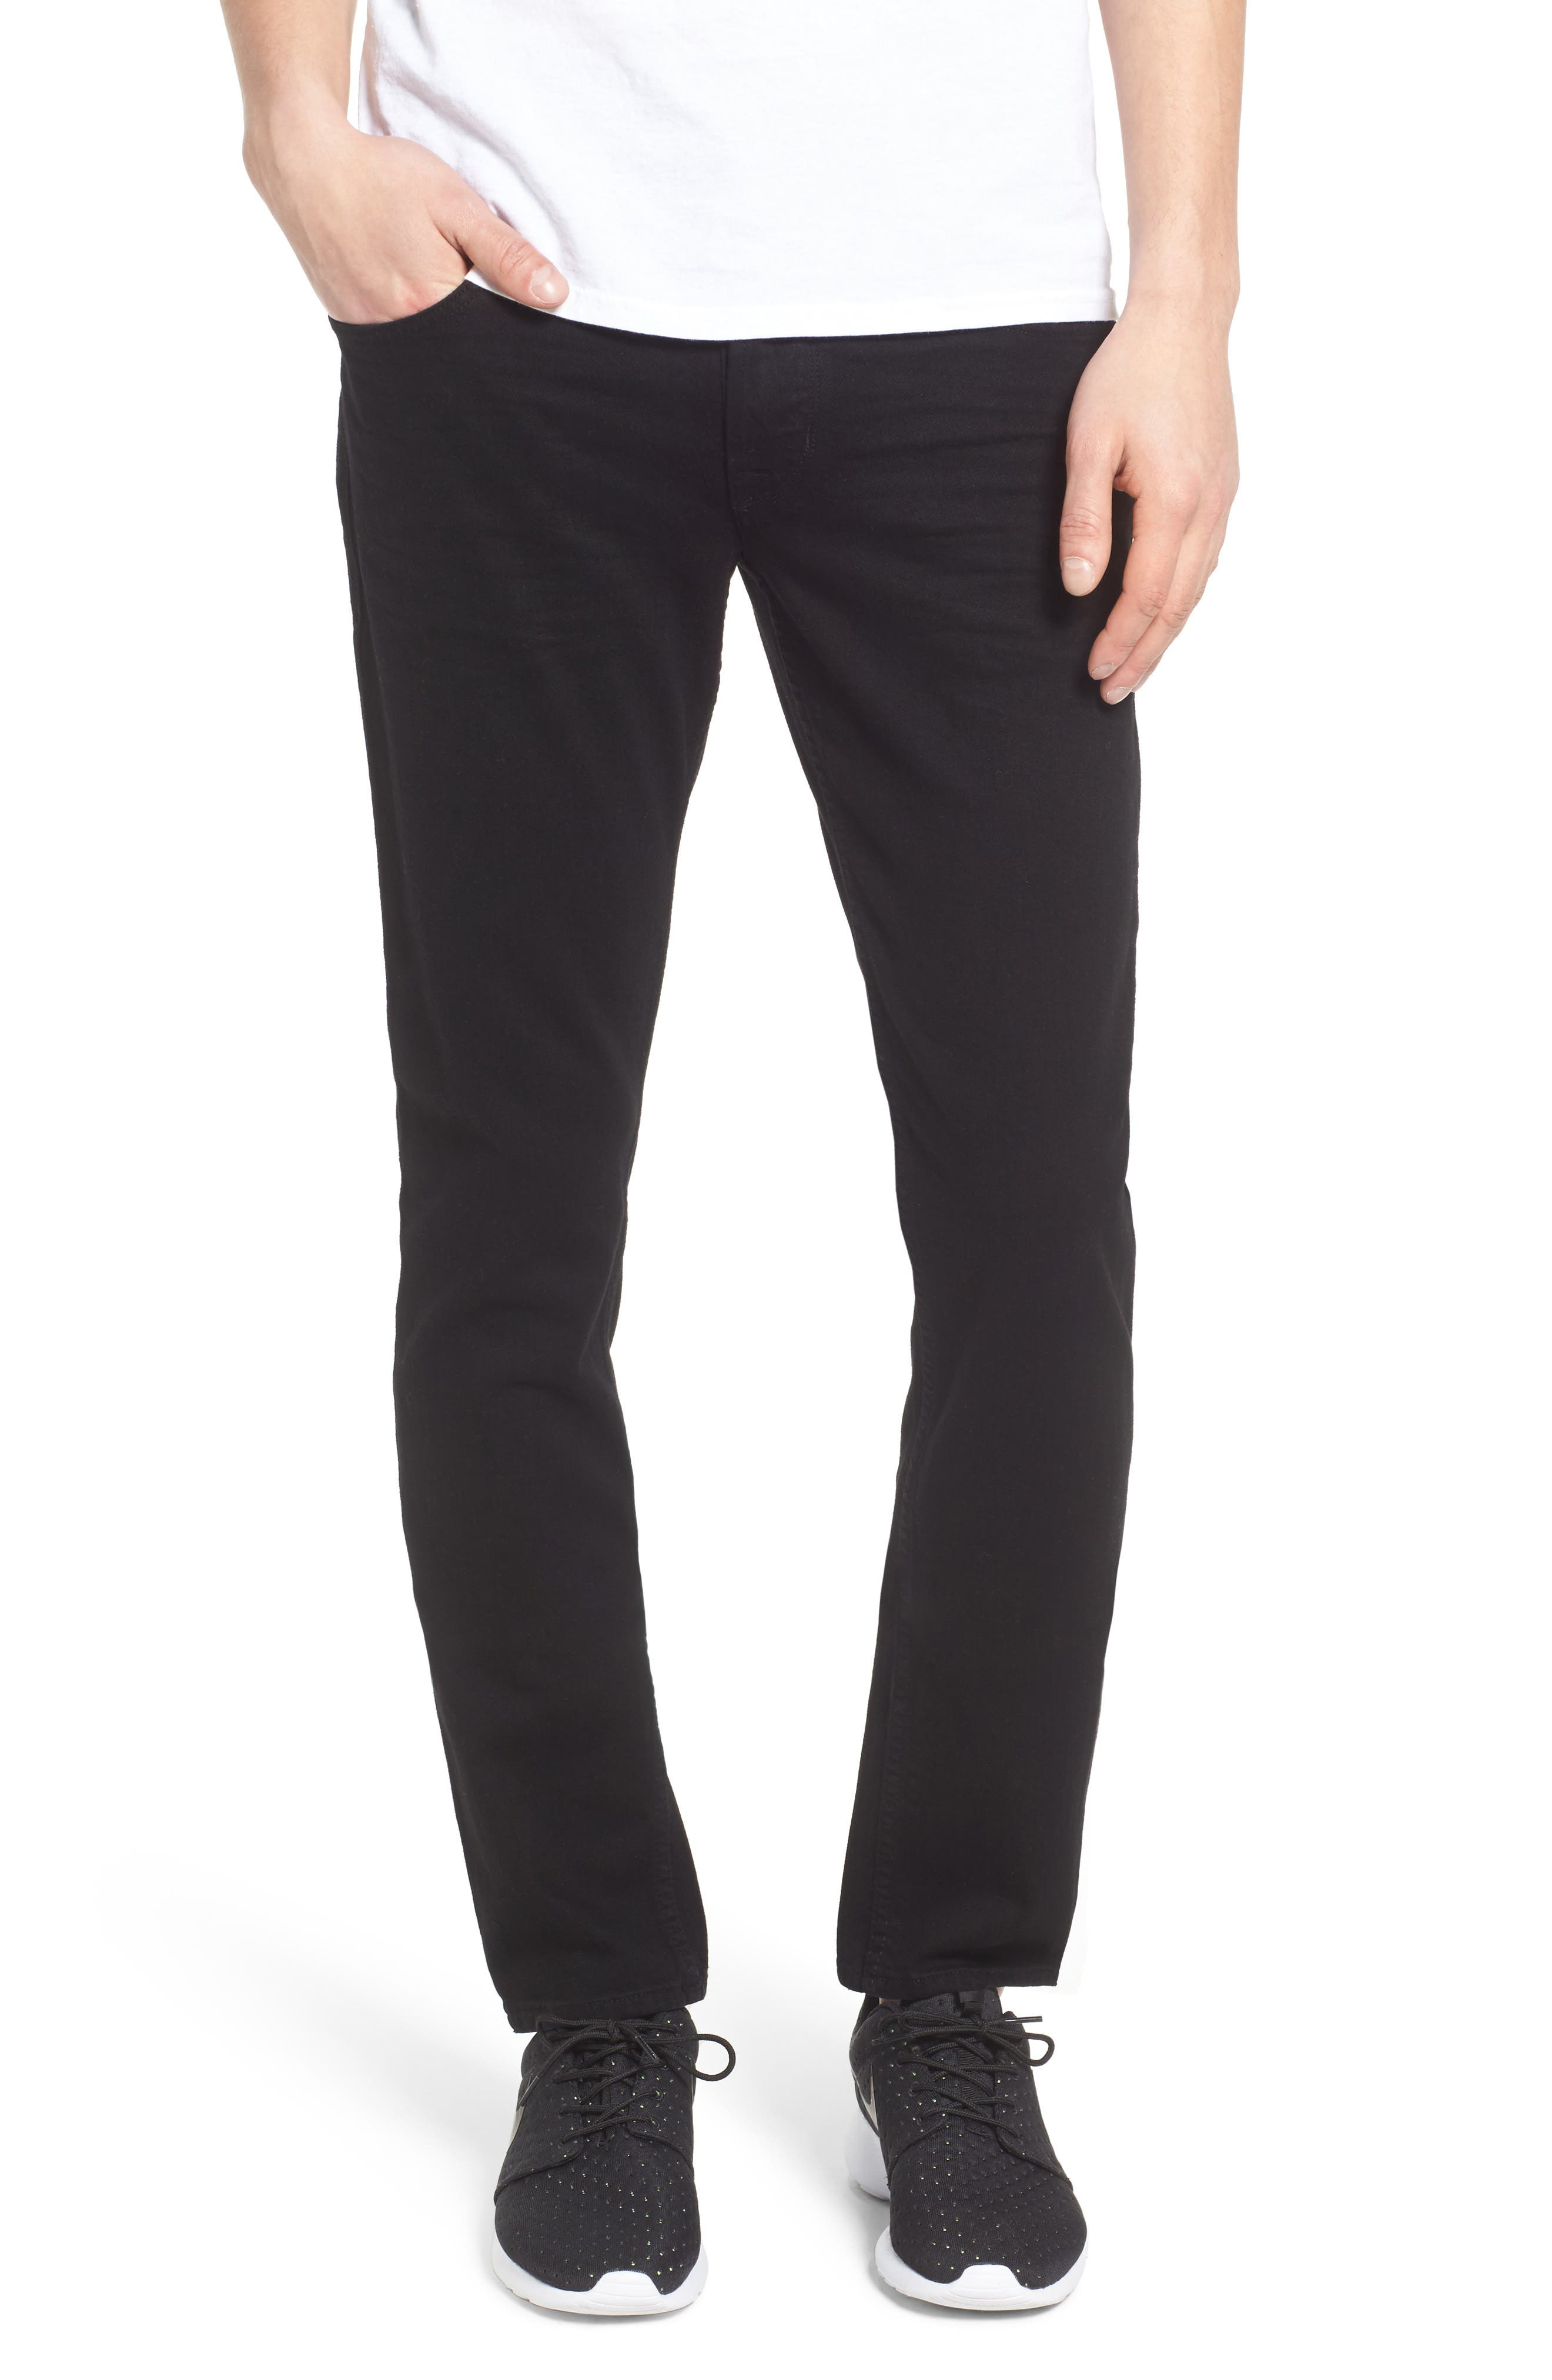 Axl Skinny Fit Jeans,                             Main thumbnail 1, color,                             002